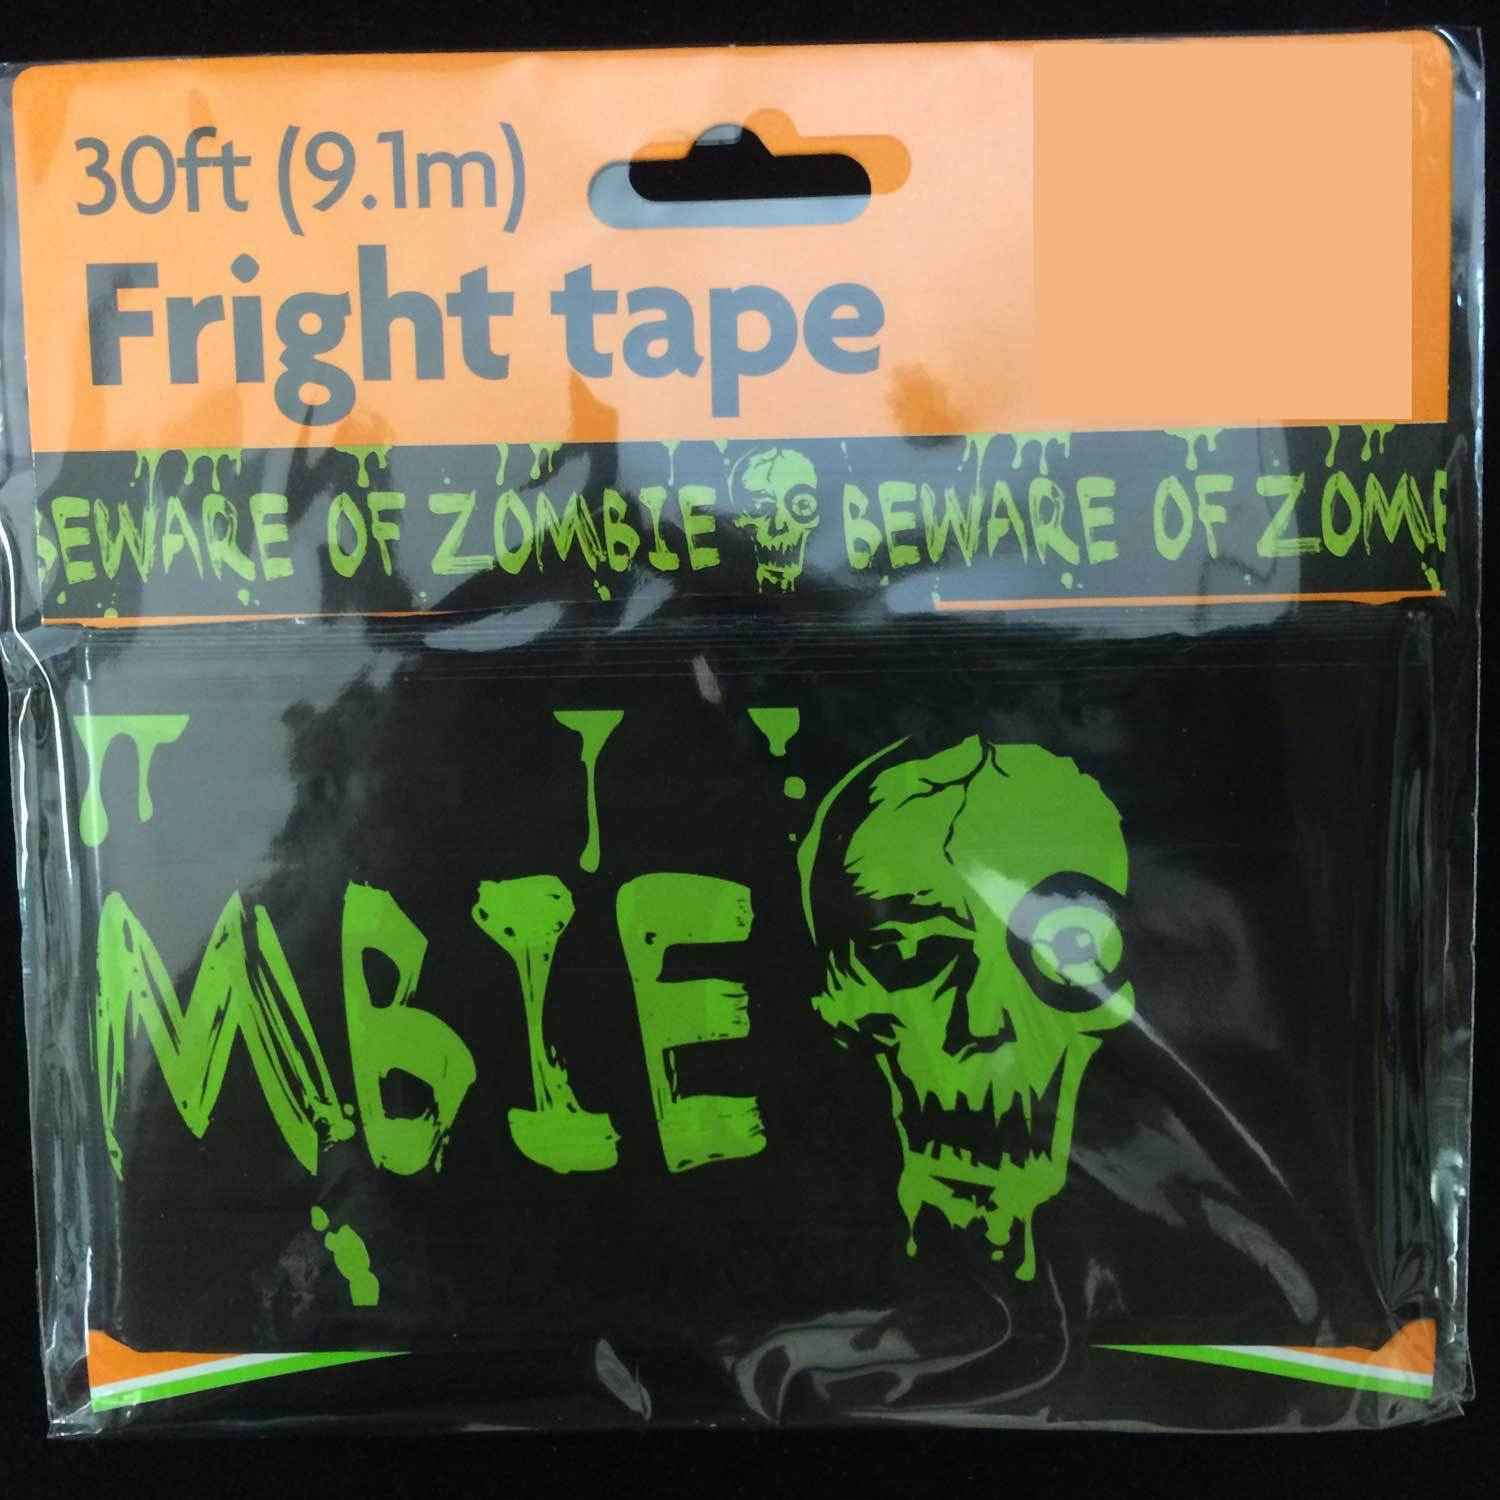 BEWARE-of-ZOMBIES Warning Caution Border Fright Tape Halloween Decoration-30ft